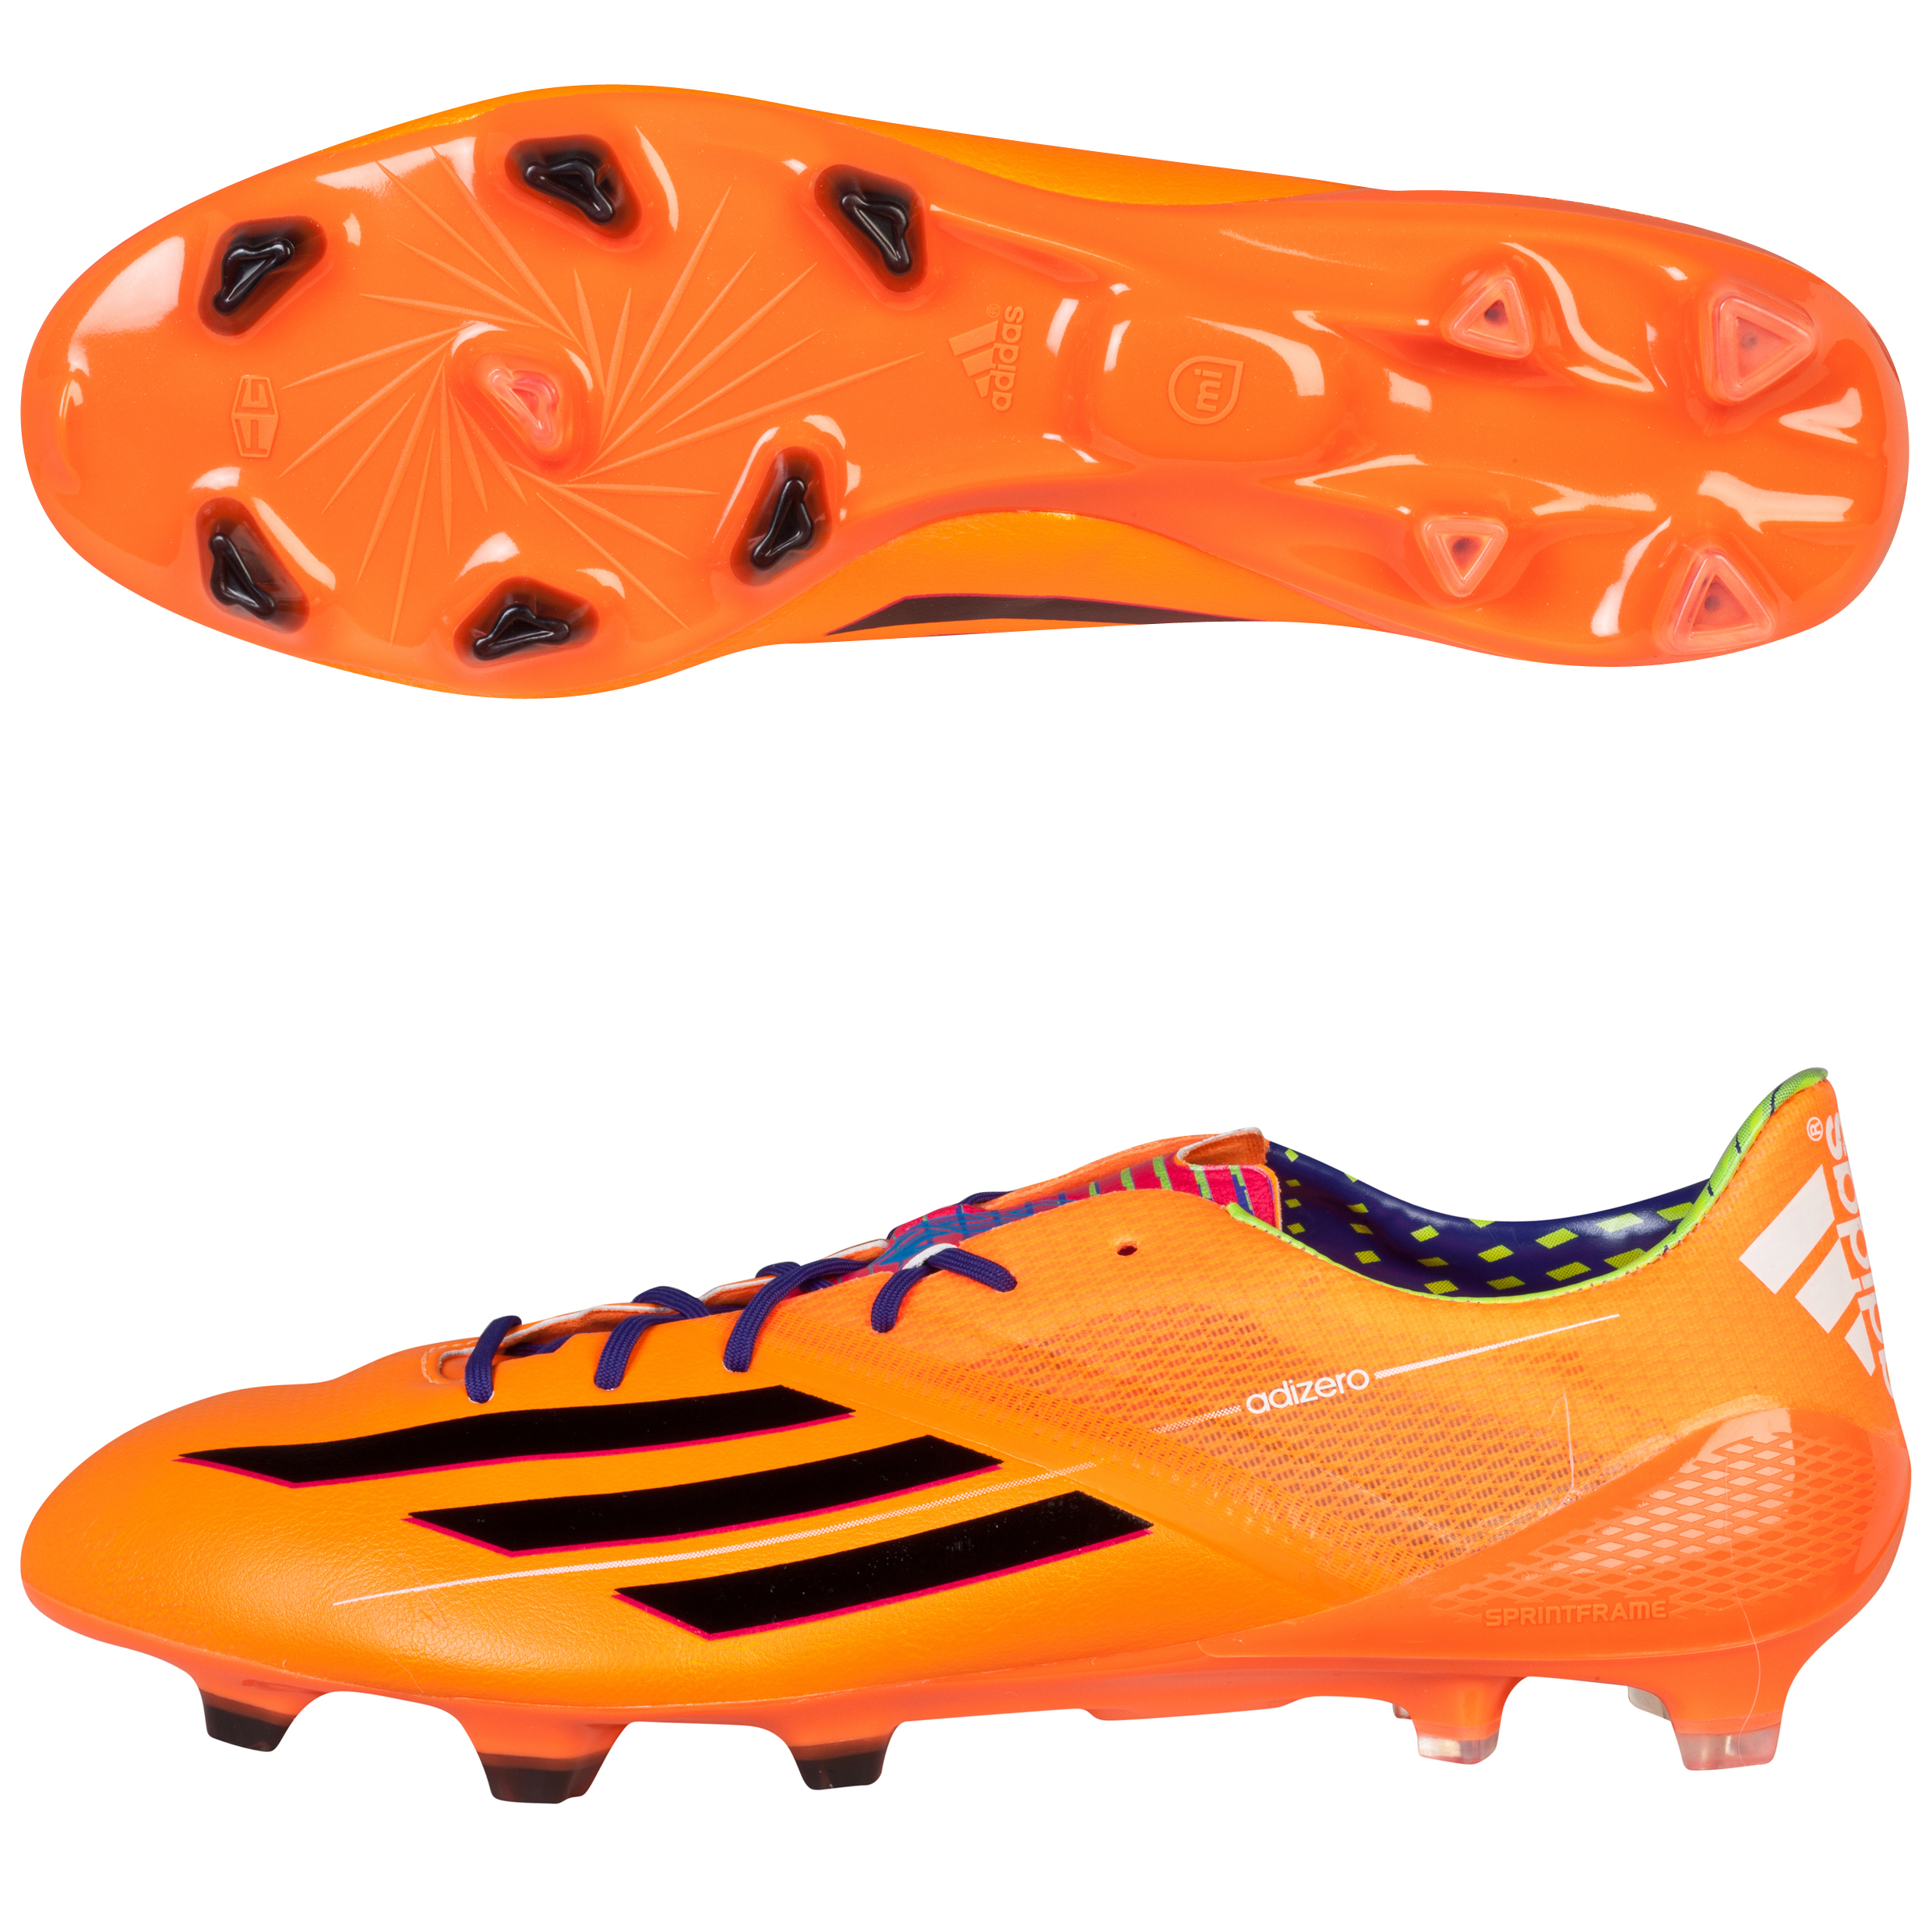 Adidas F50 adiZero TRX Firm Ground Football Boots Yellow